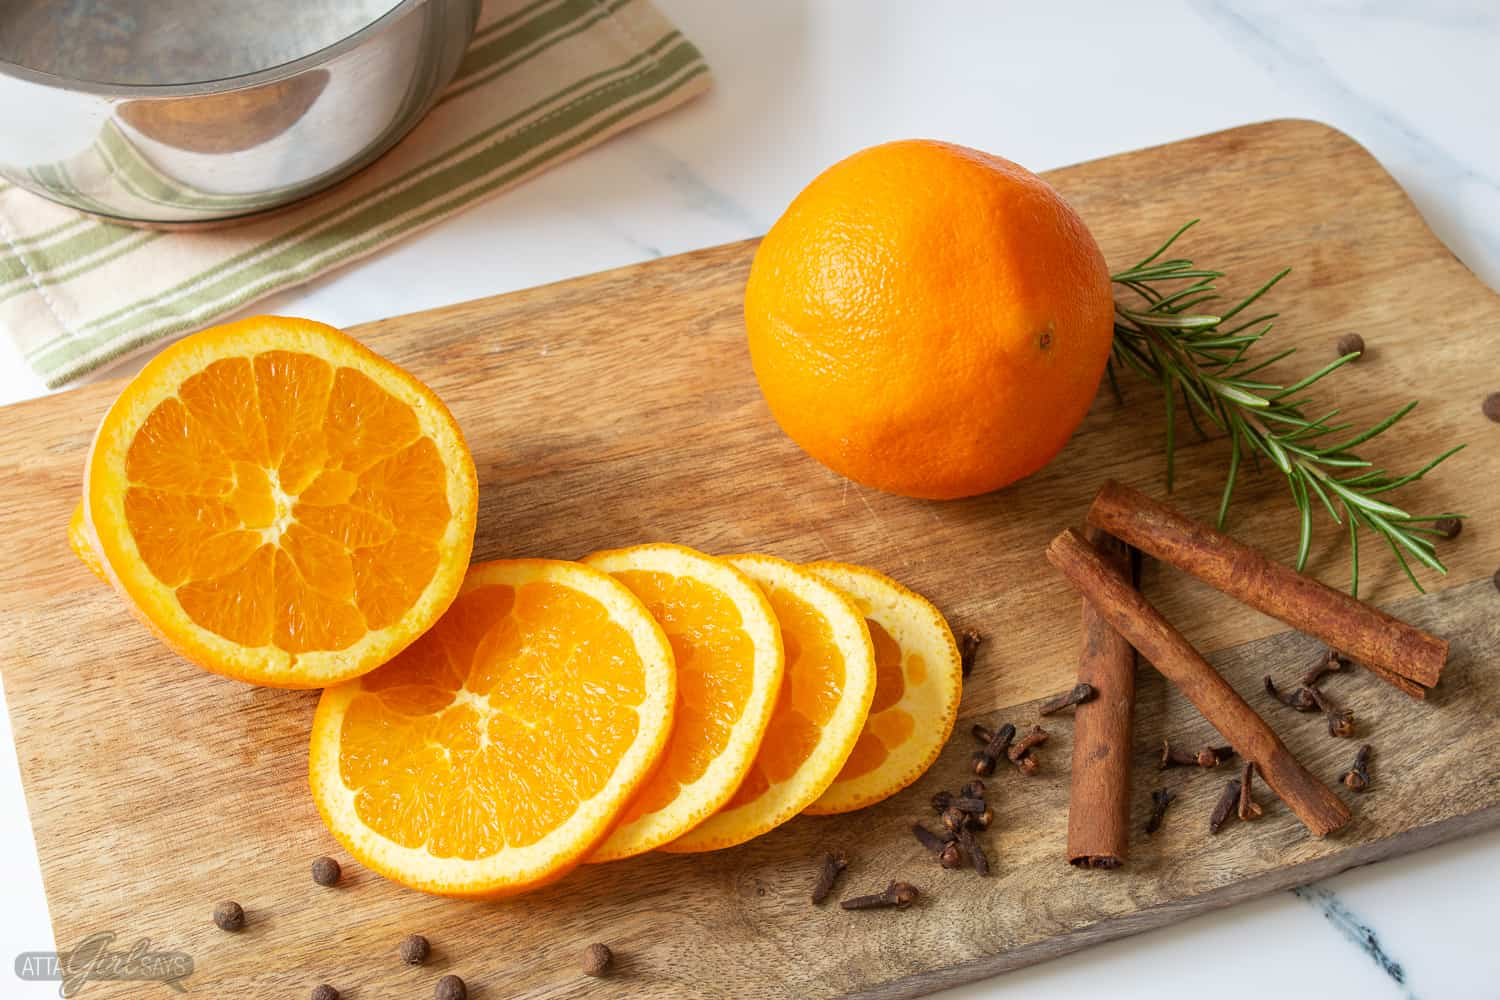 sliced oranges, cinnamon sticks, spices and herbs for stovetop potpourri